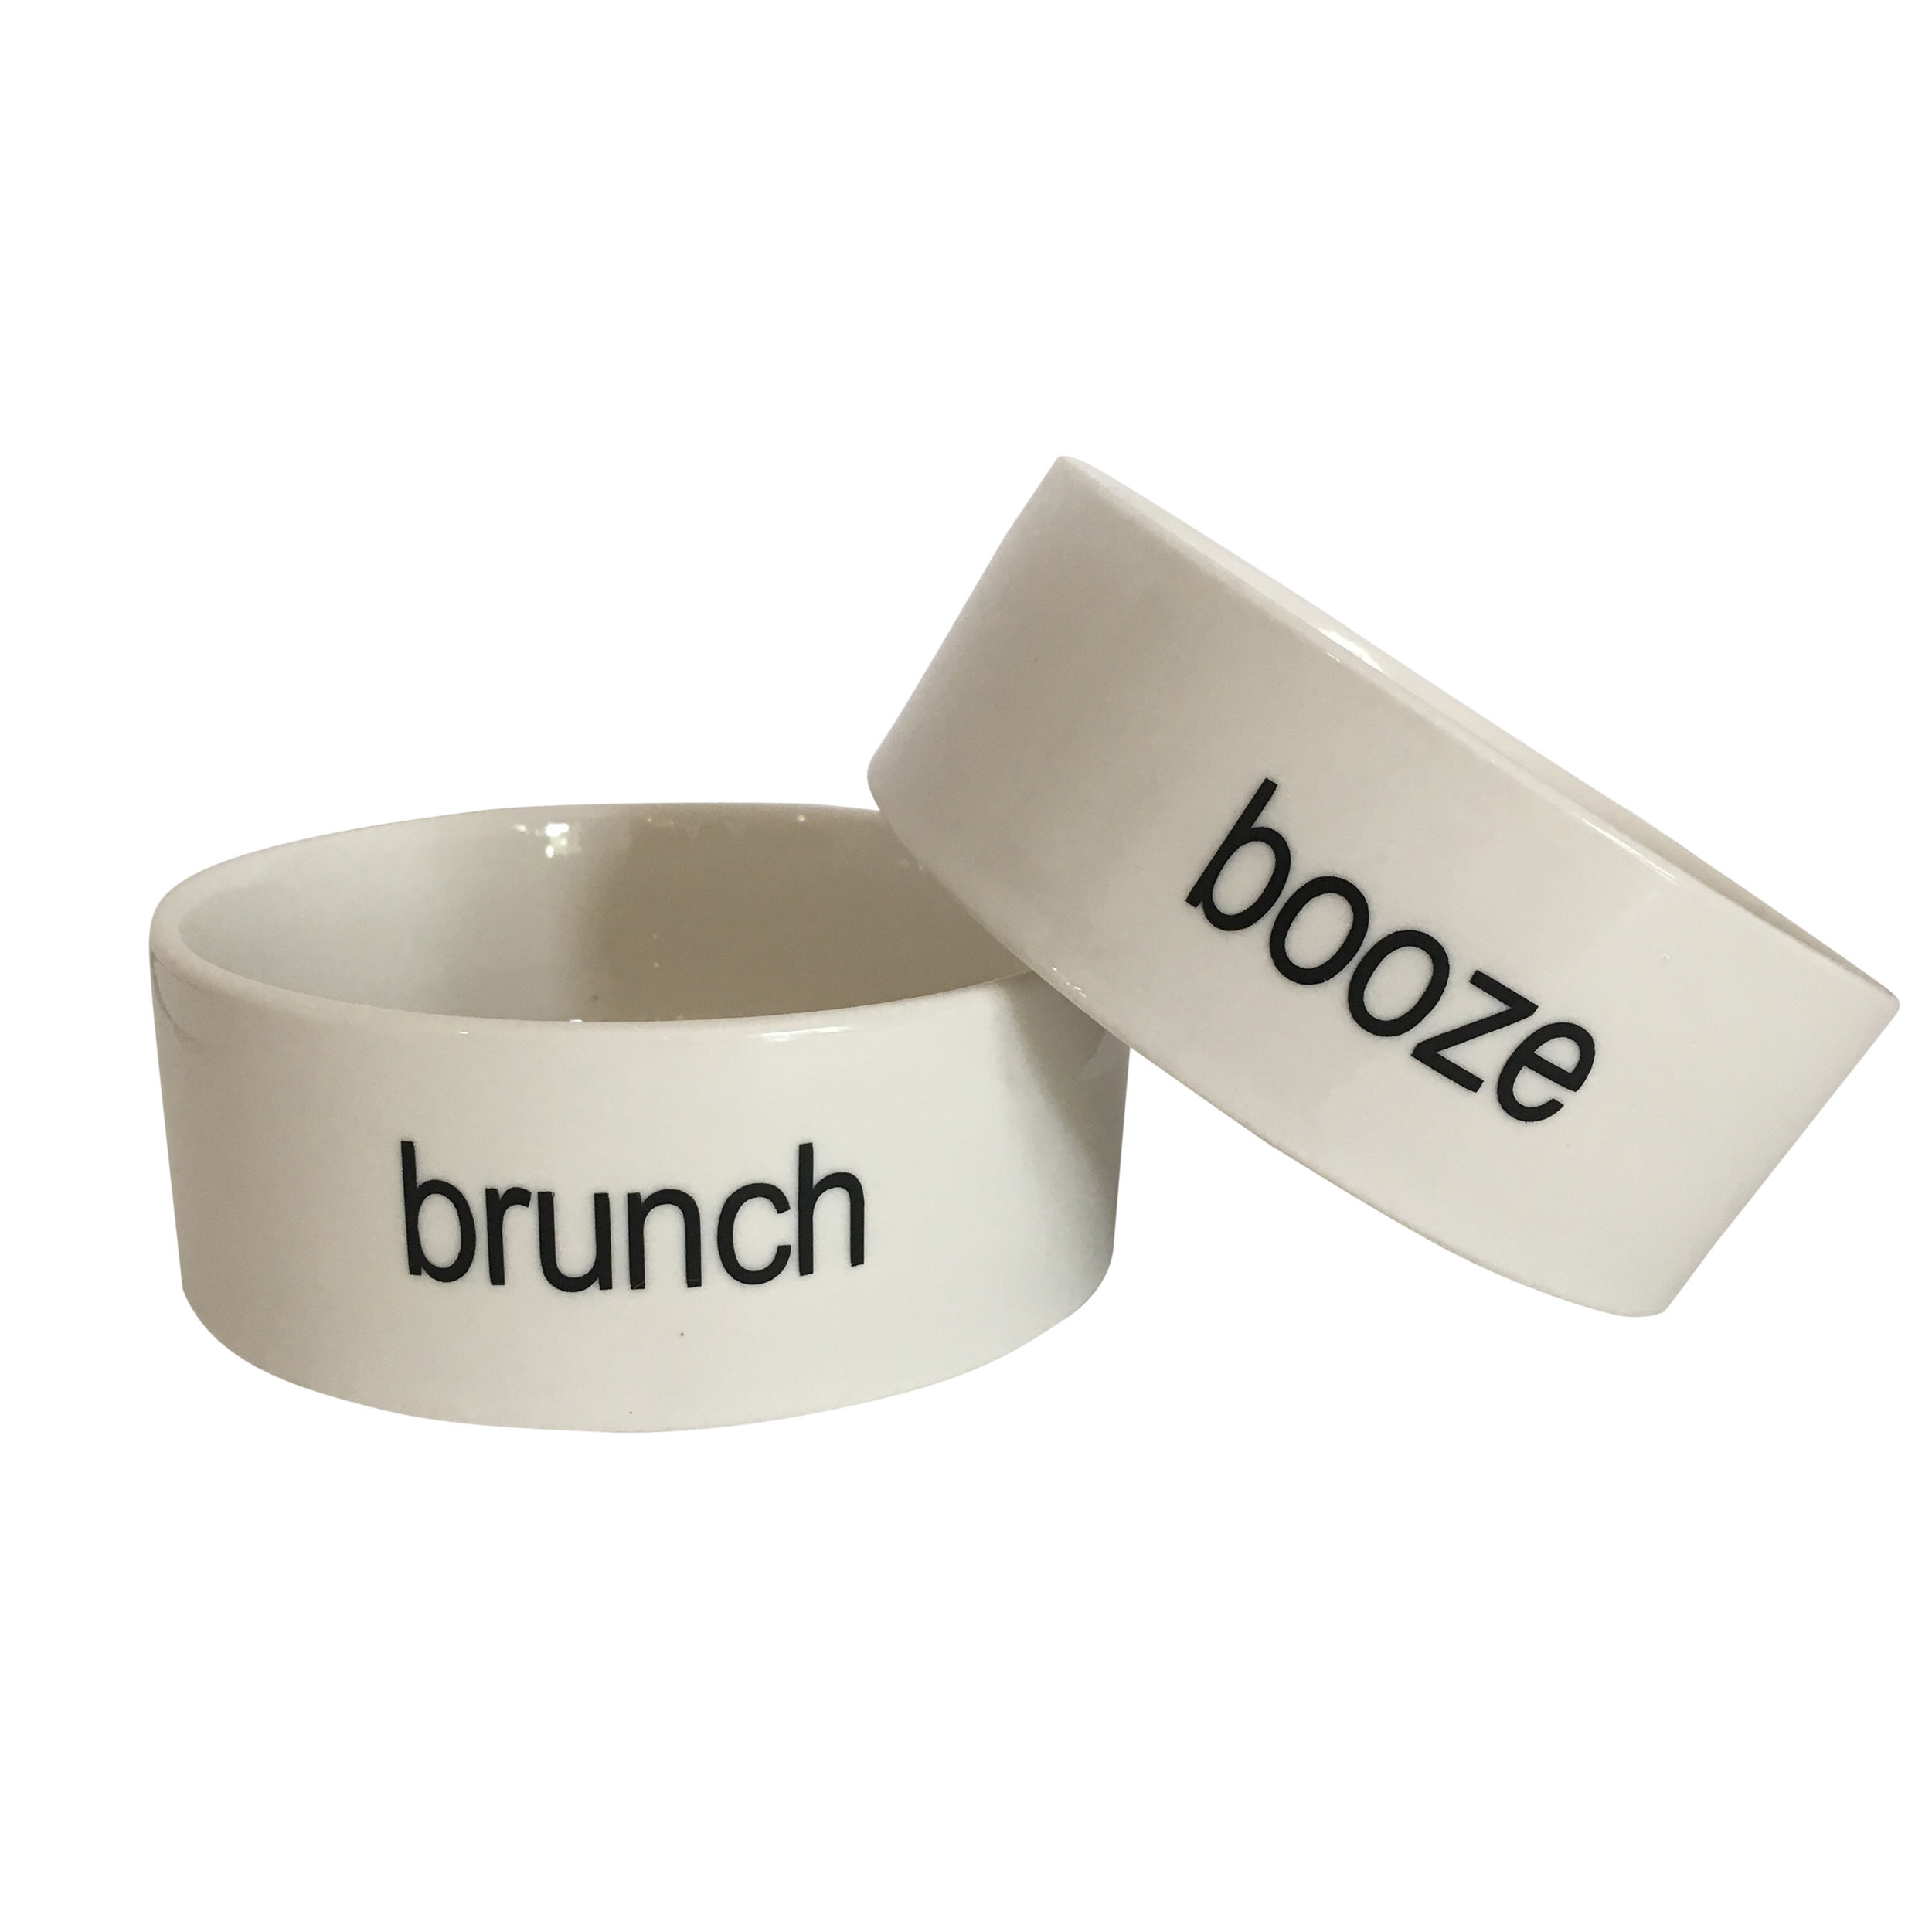 brunch and booze cat bowls